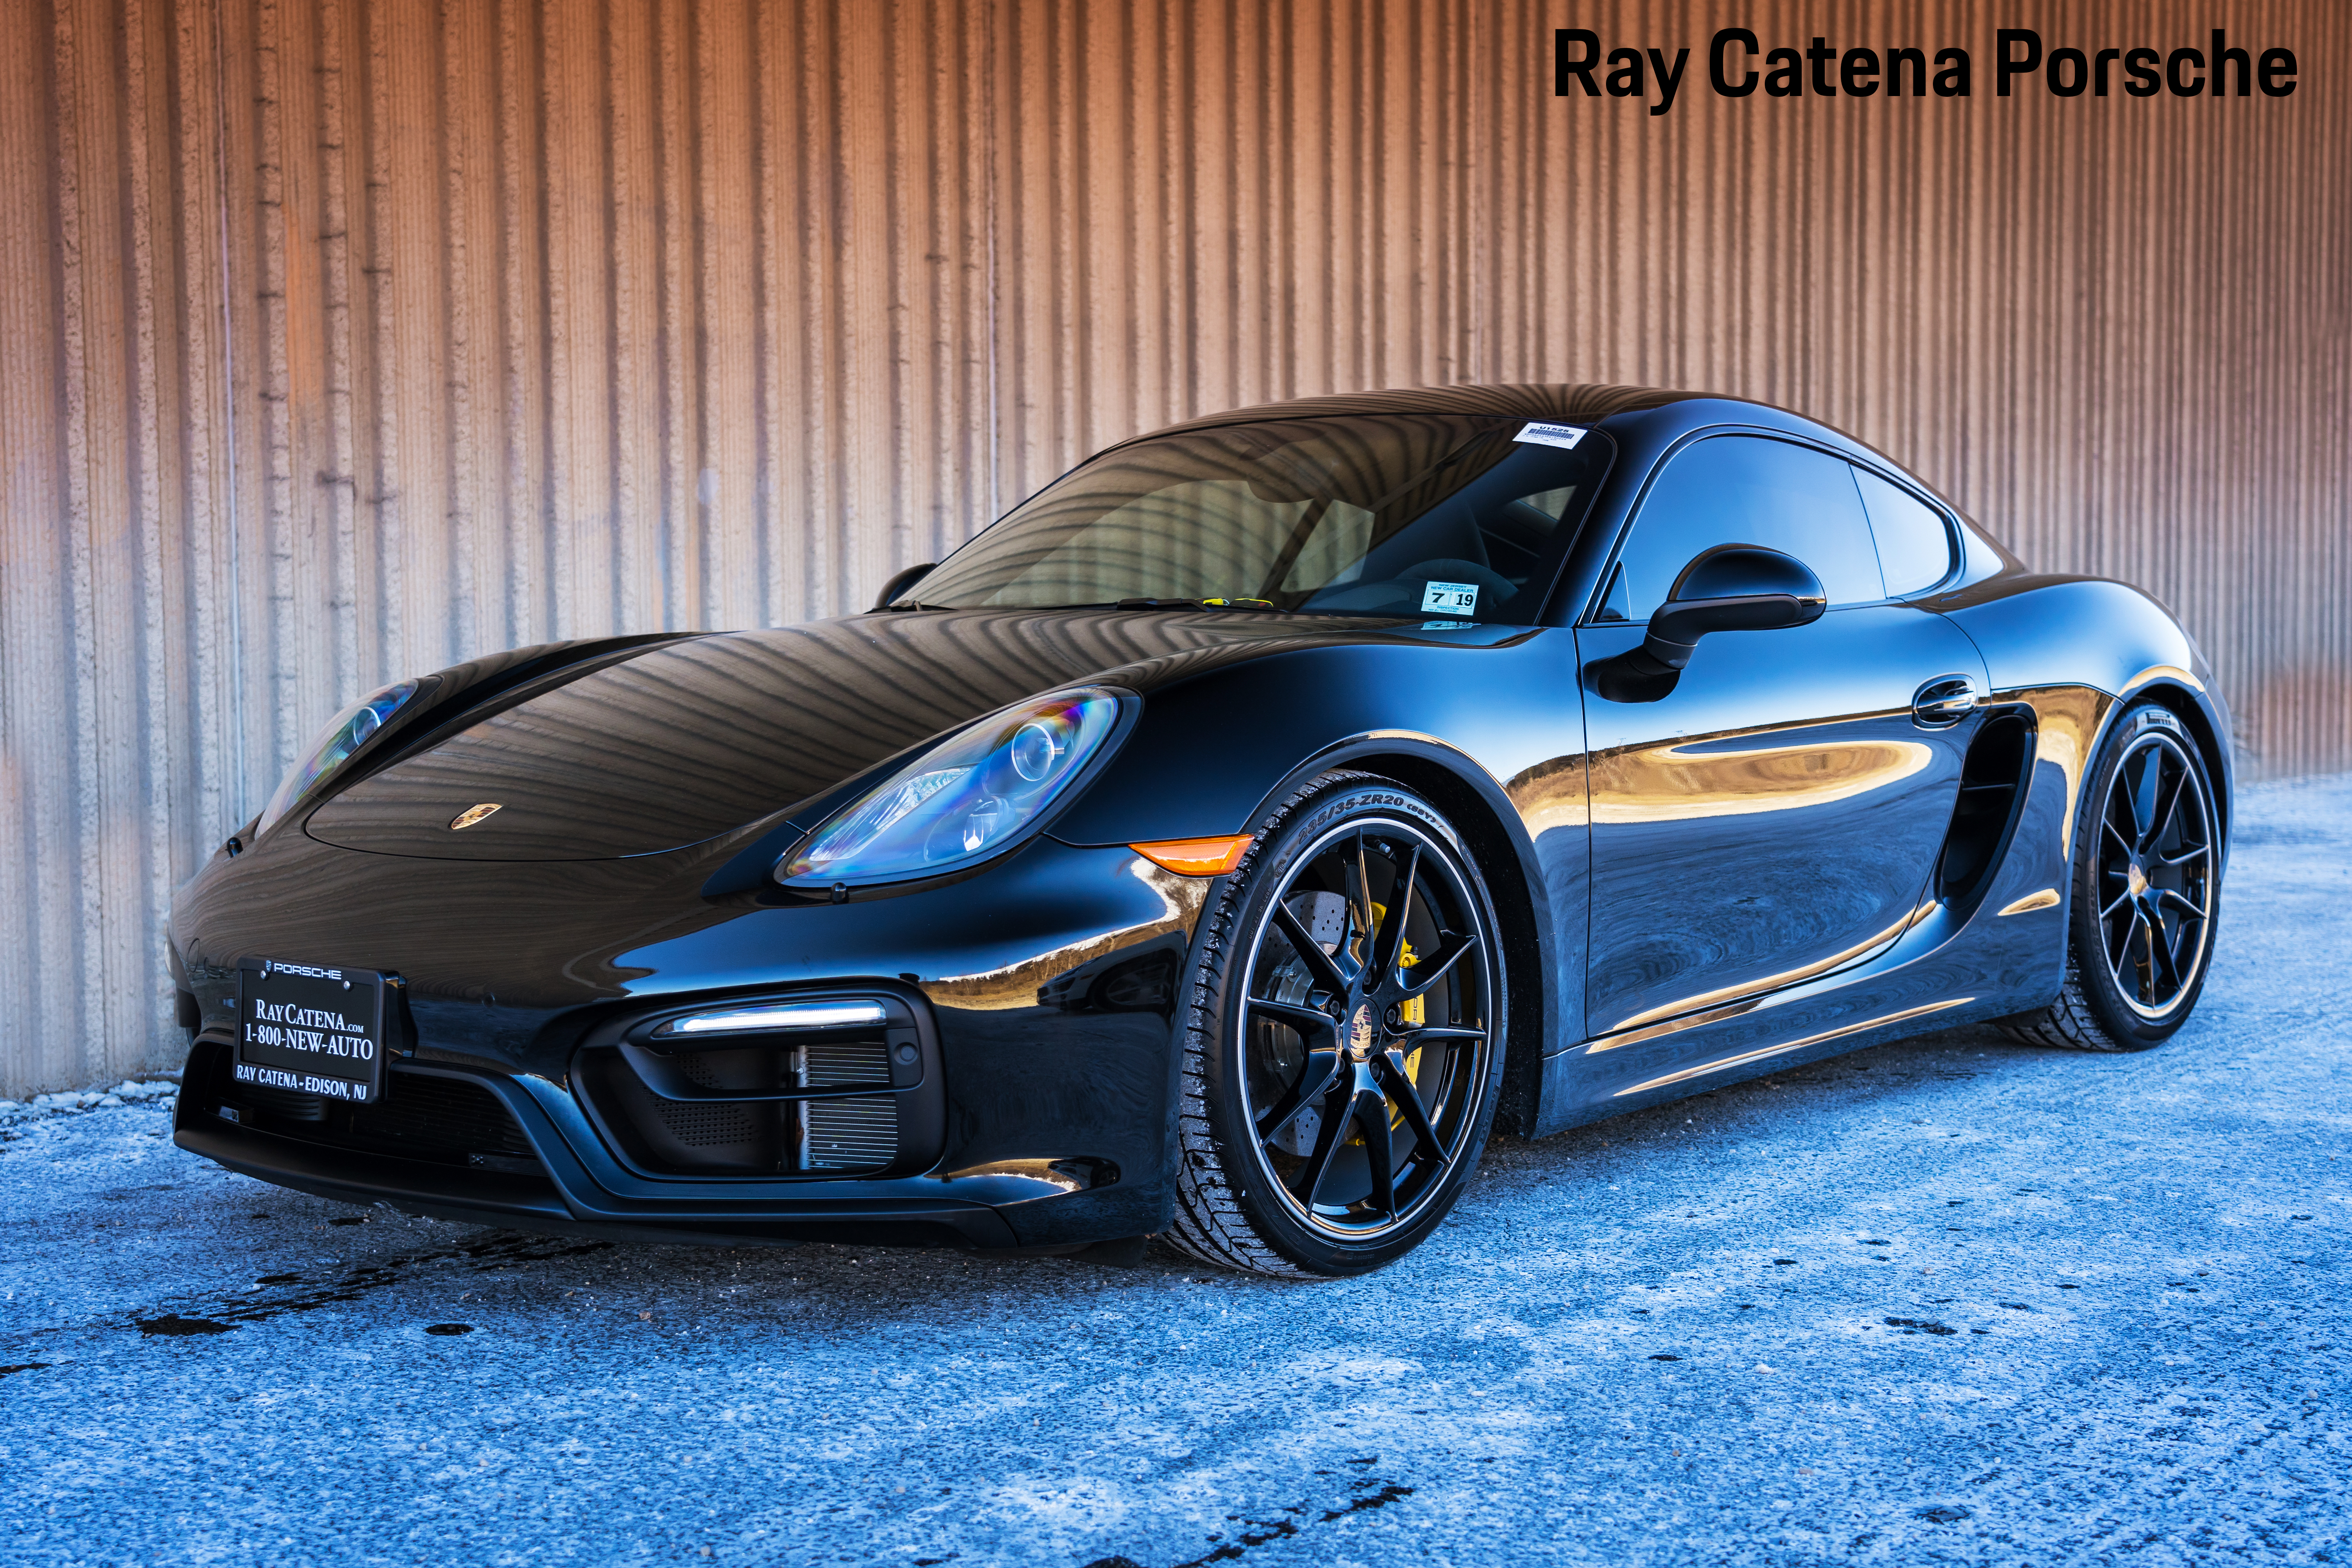 pre-owned 2015 porsche cayman gts coupe in edison #u1525 | ray